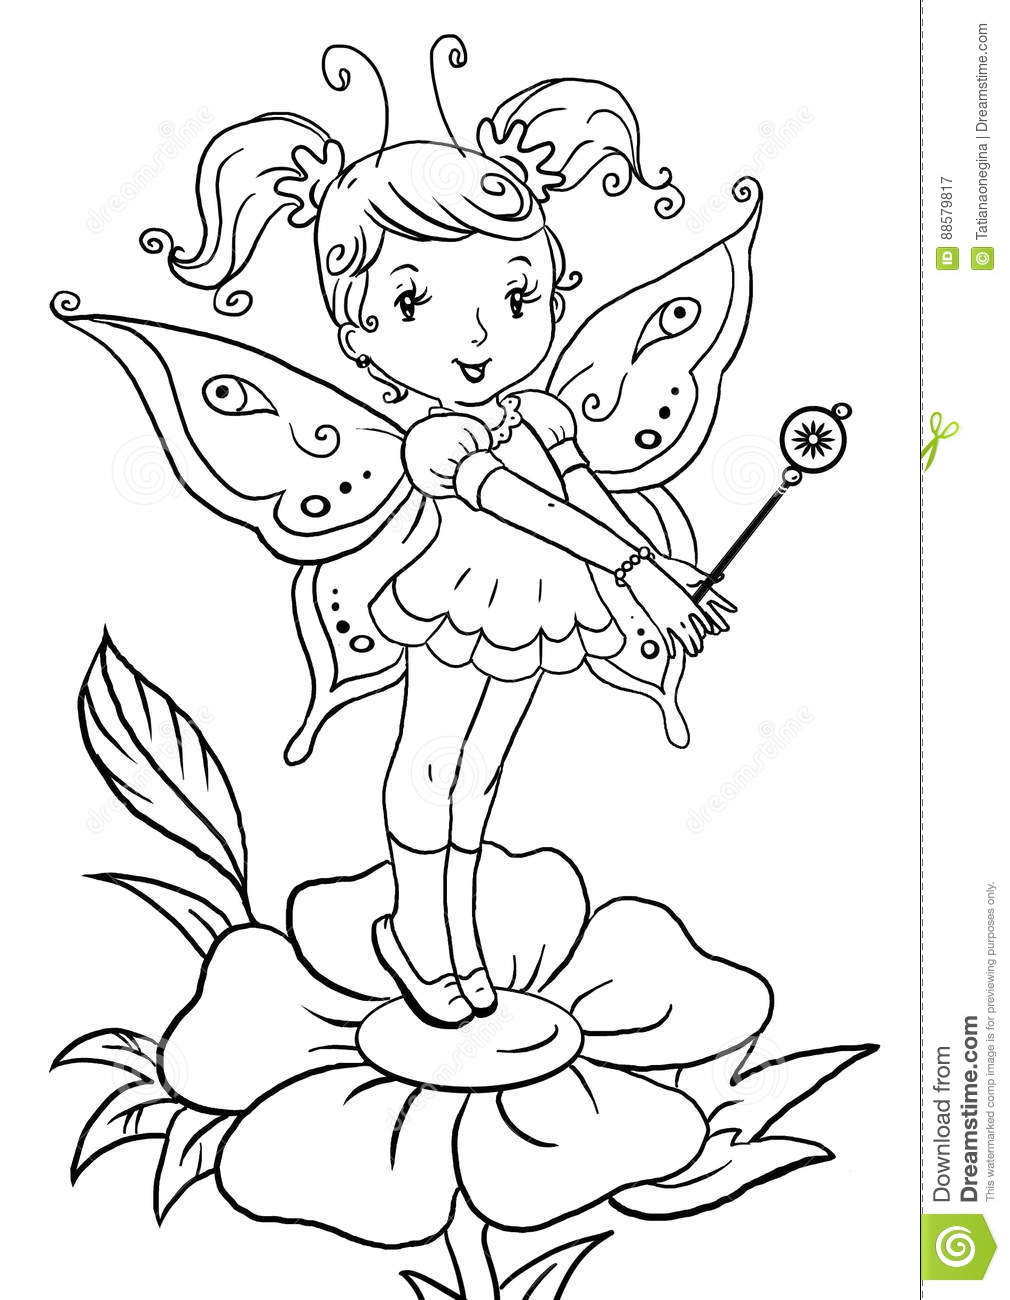 Coloring Page With Cute Little Elf Girl Standing On A Flower Stock ...